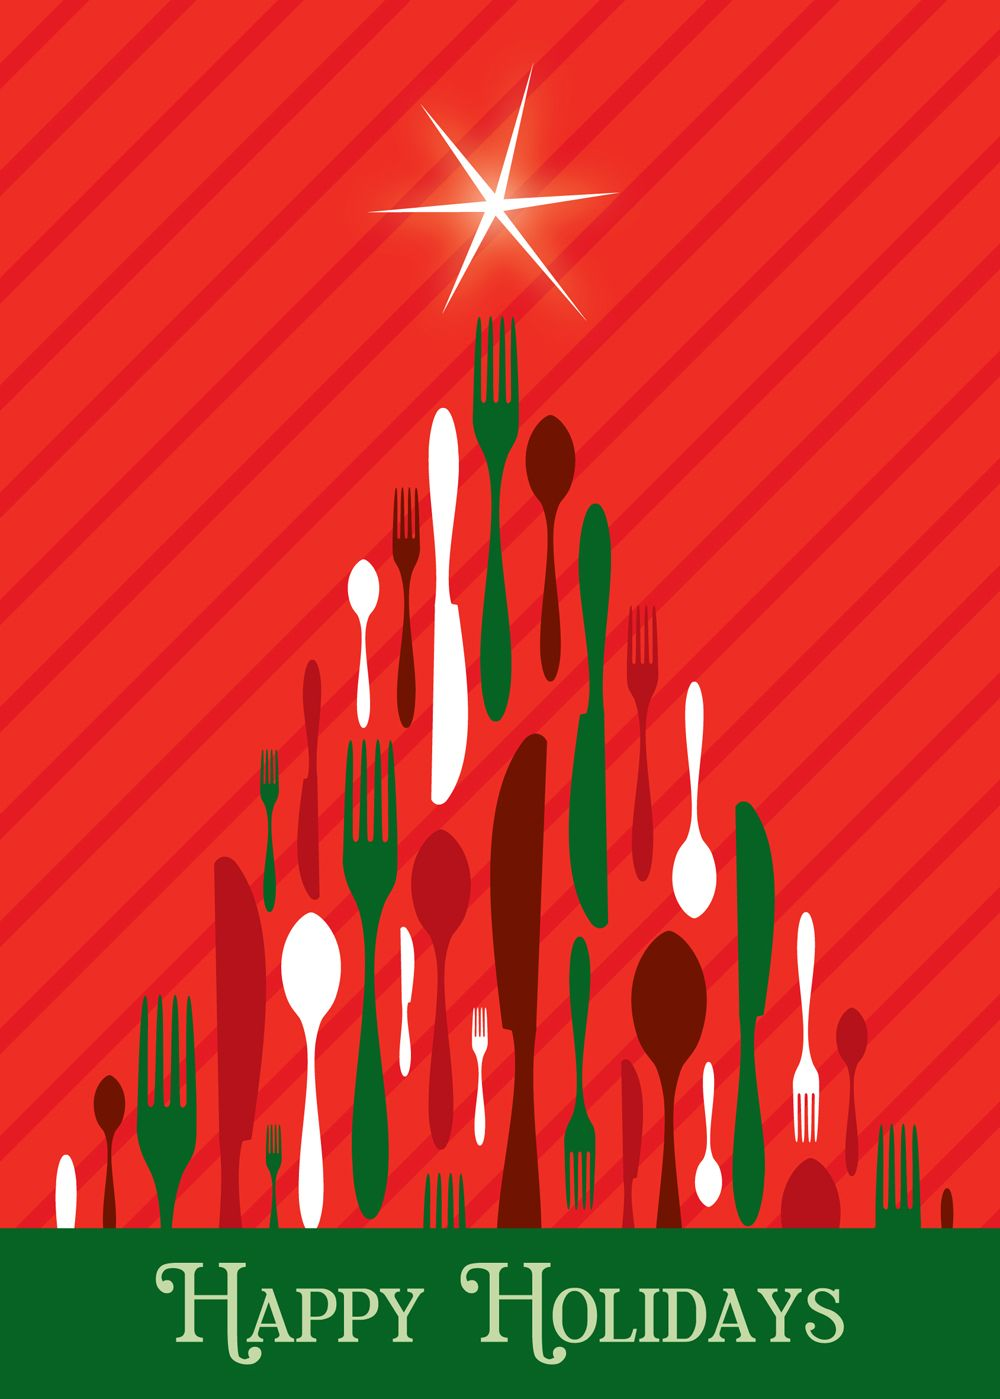 Culinary Tree Holiday Greeting Cards Discount Greeting Cards